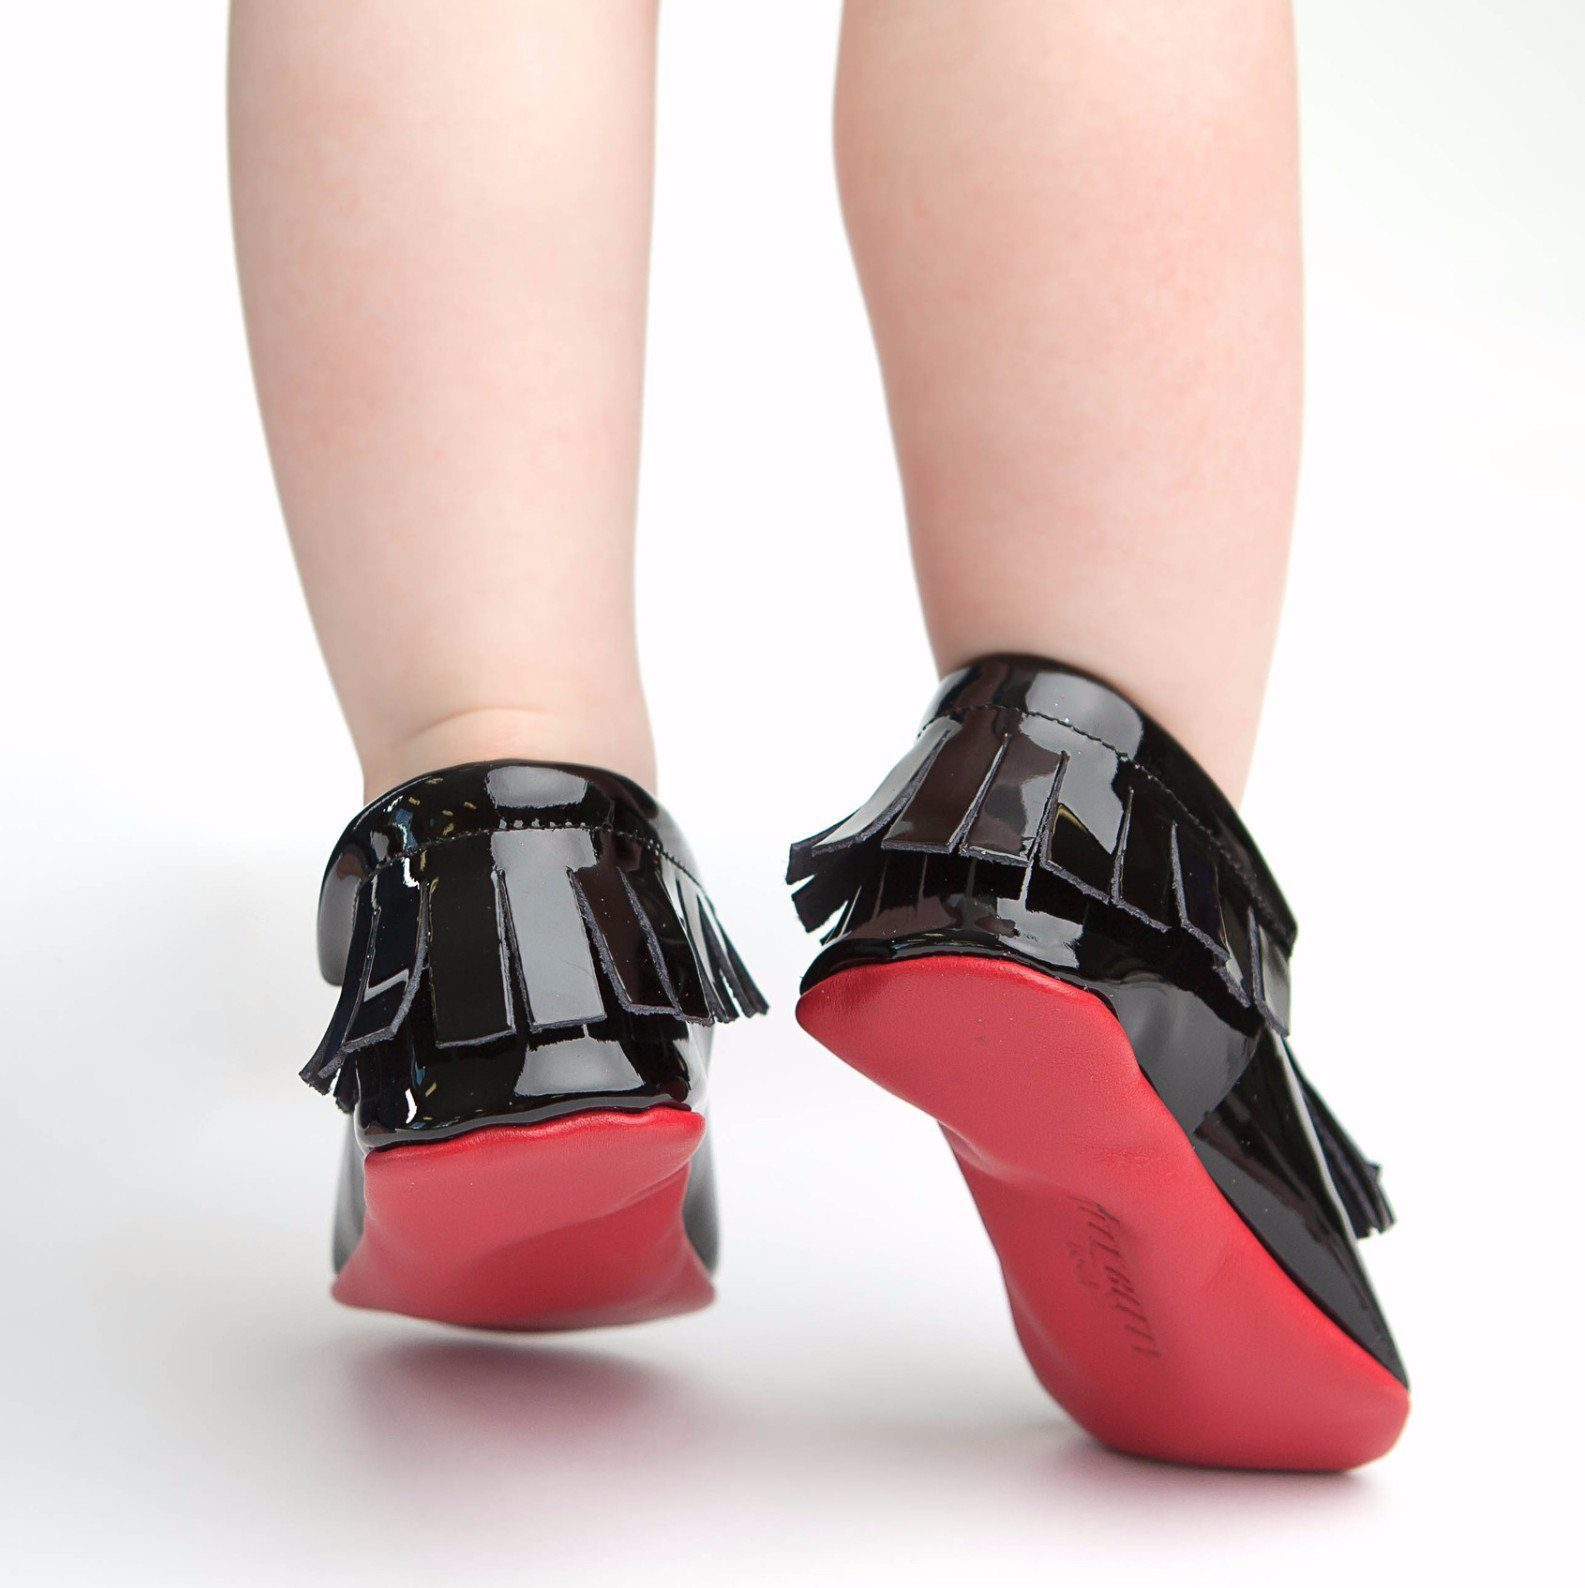 a20793b718f6 Moccasins black tassles red bottoms childrens boutique shoes jpg 1585x1588 Red  bottom shoes